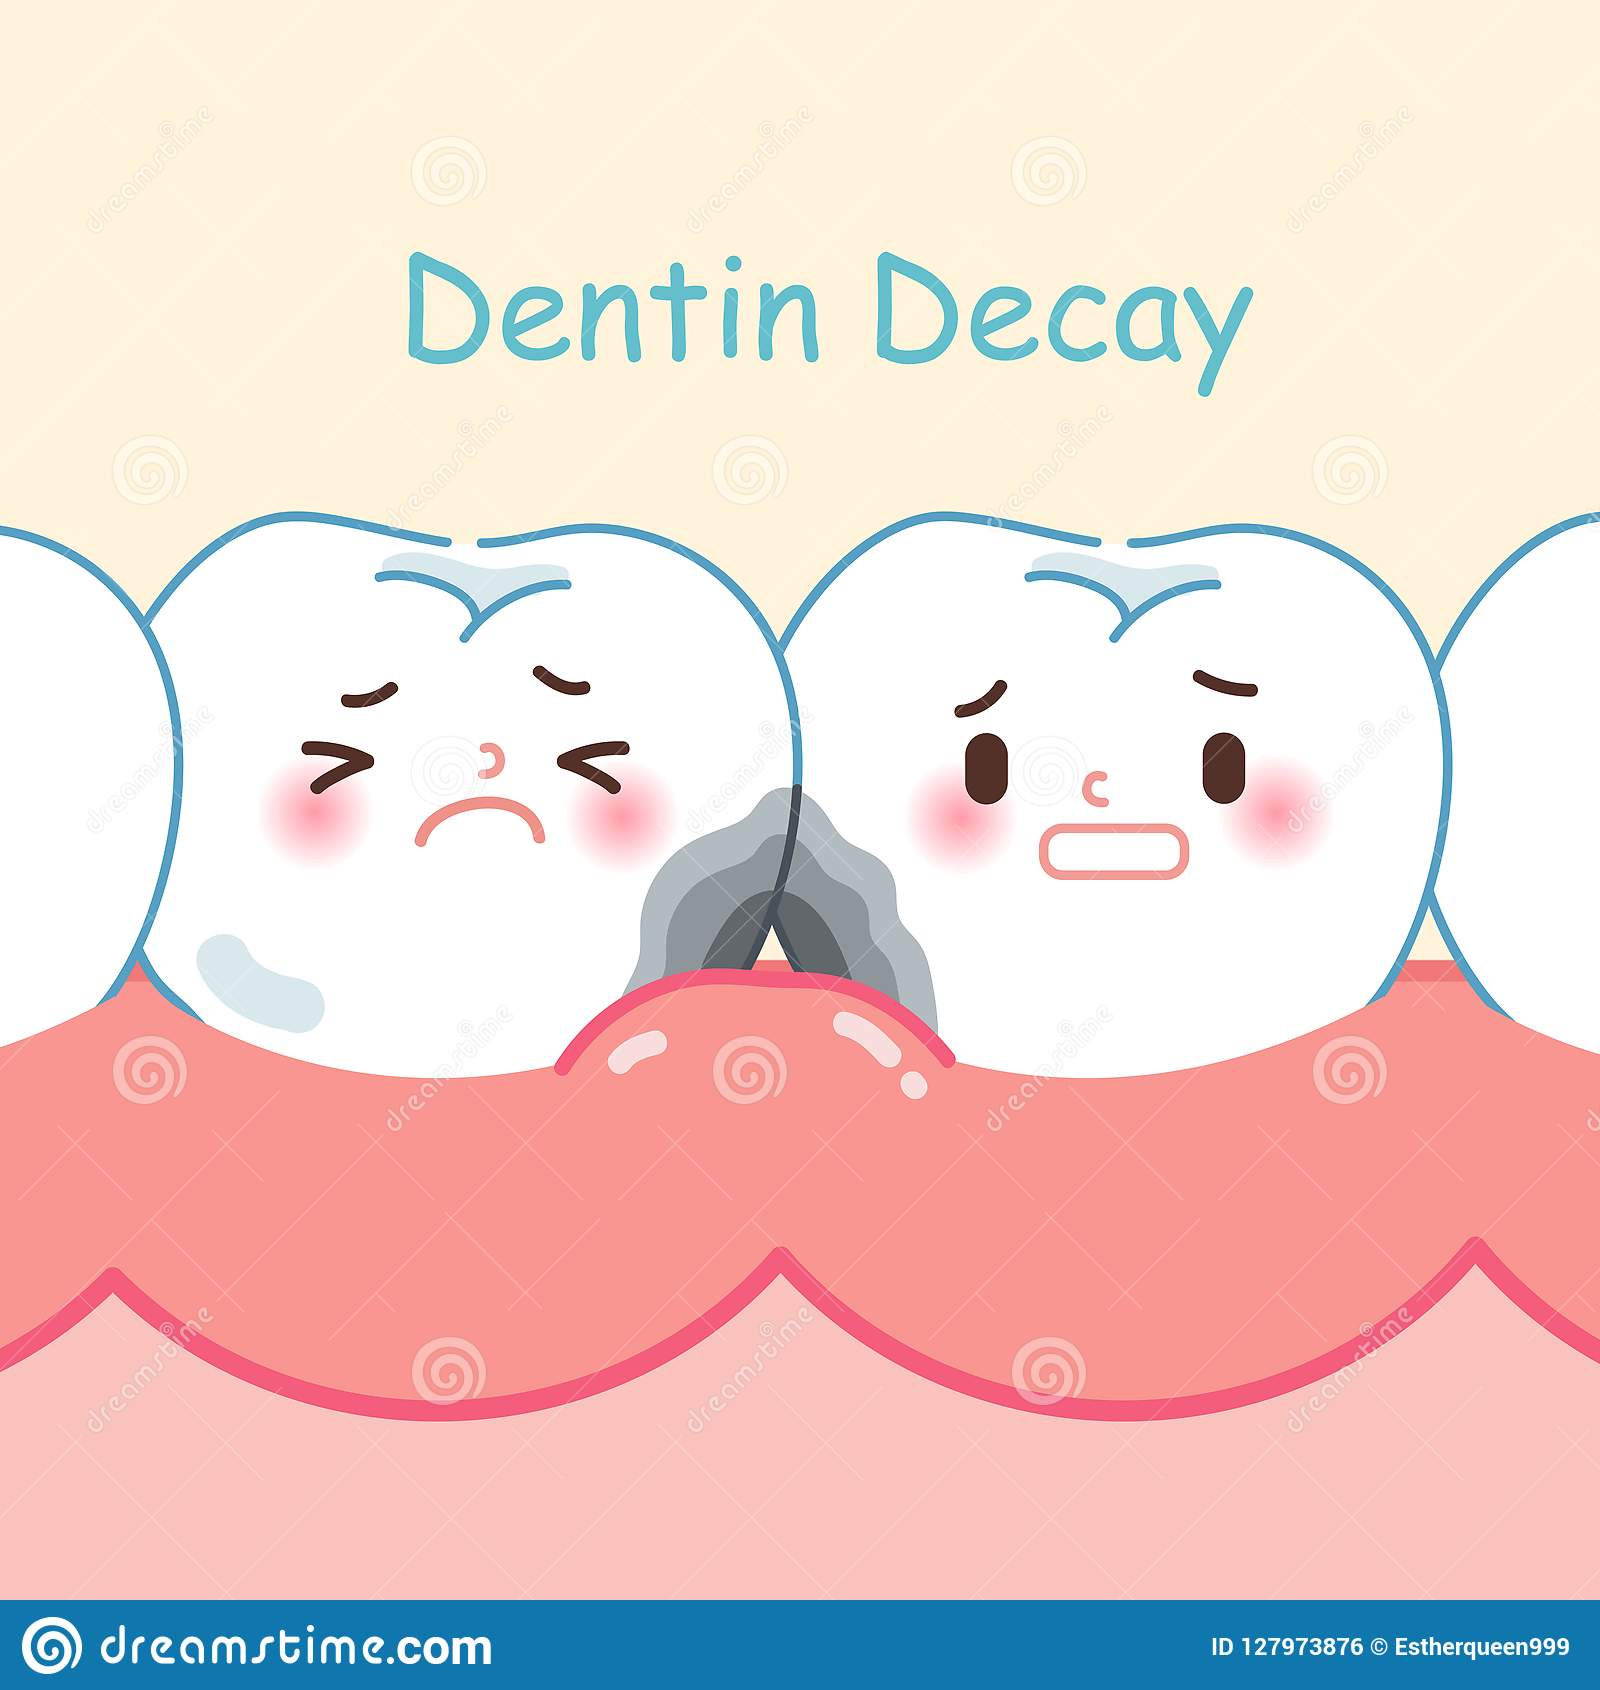 Tooth with dentin decay